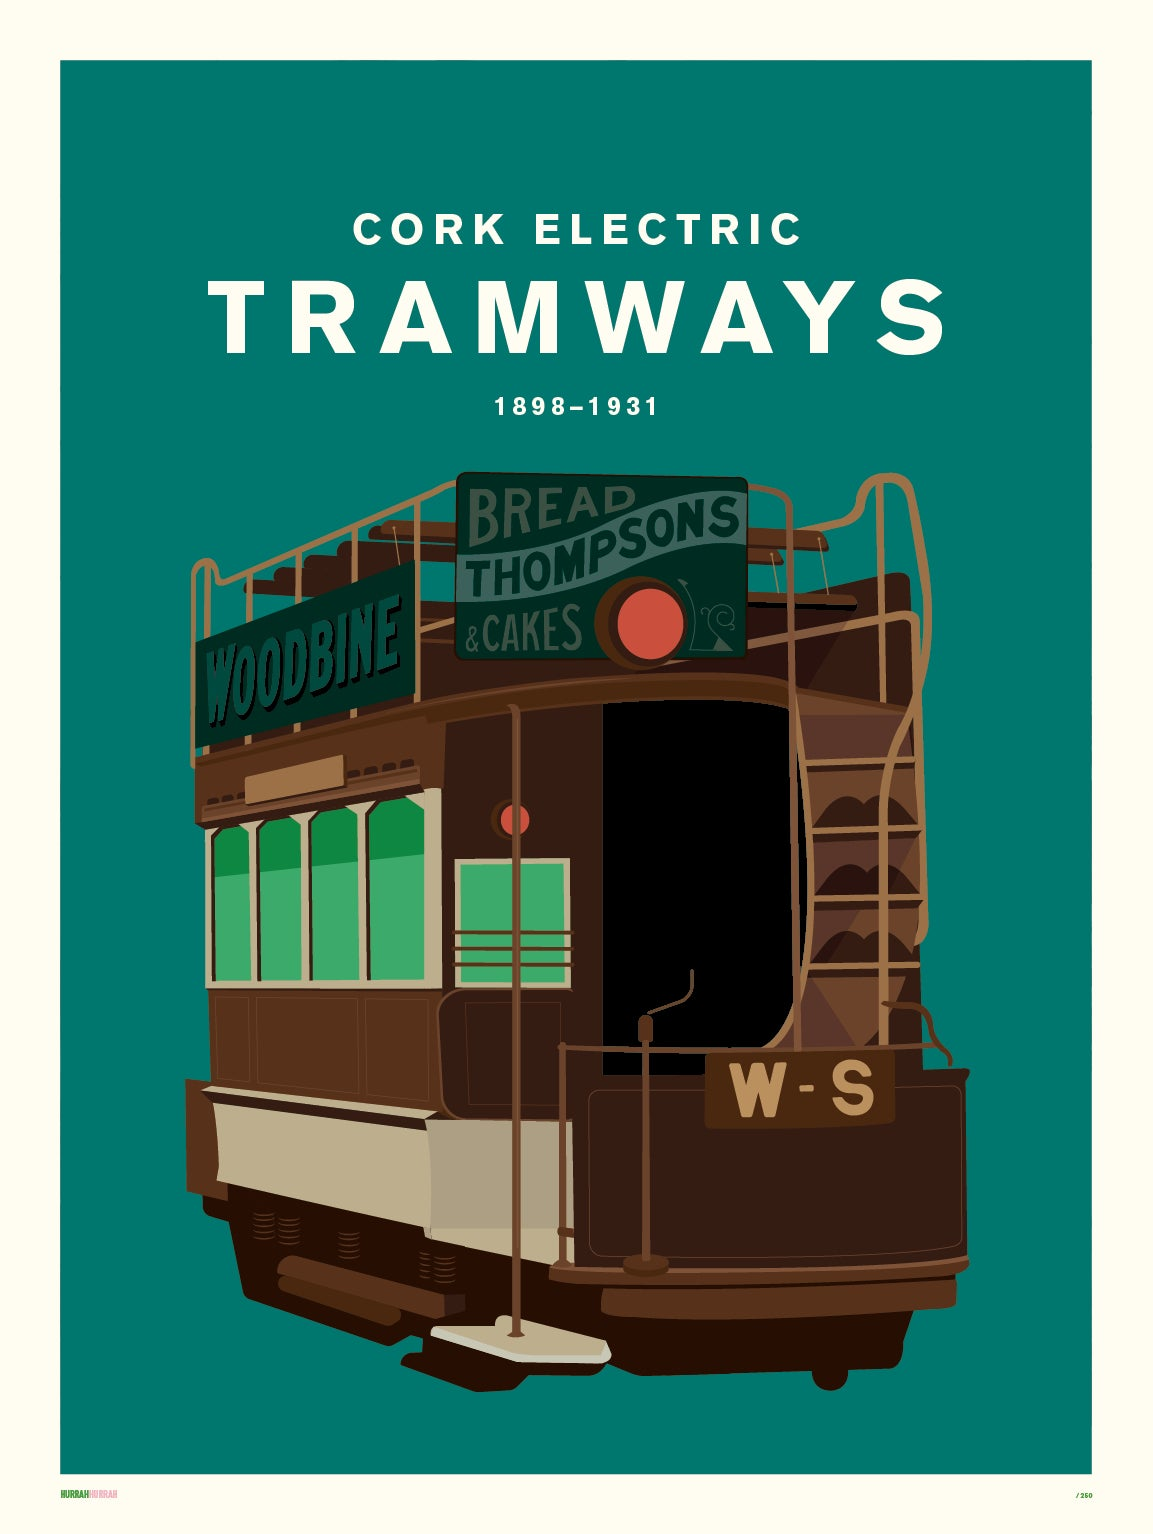 Image of Cork Electric Tramways